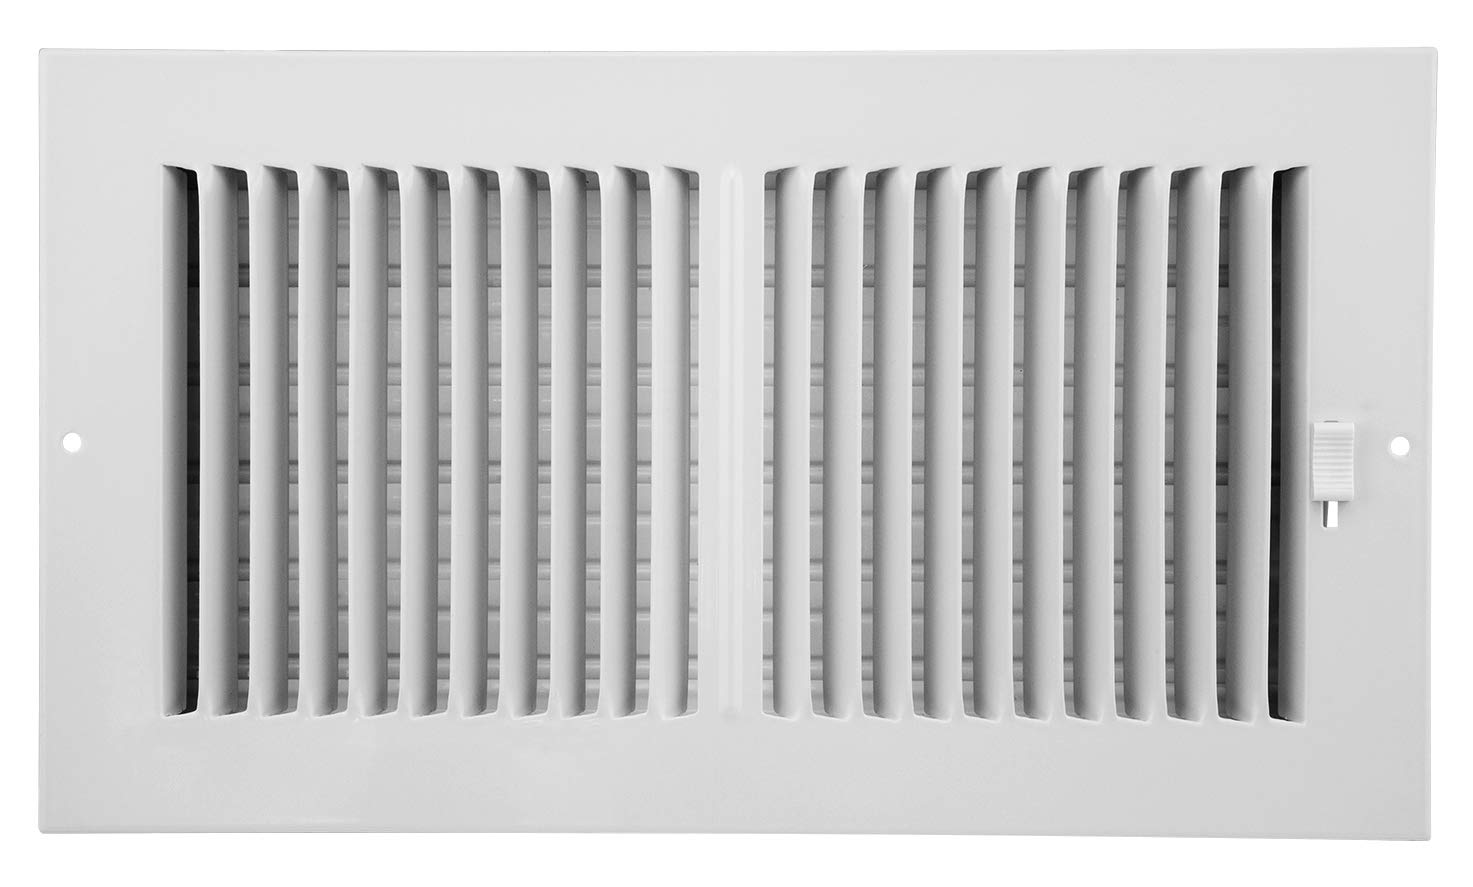 Accord AASWWH2126 Sidewall/Ceiling Register with 2-Way Aluminum Design, 12-Inch x 6-Inch(Duct Opening Measurements), White